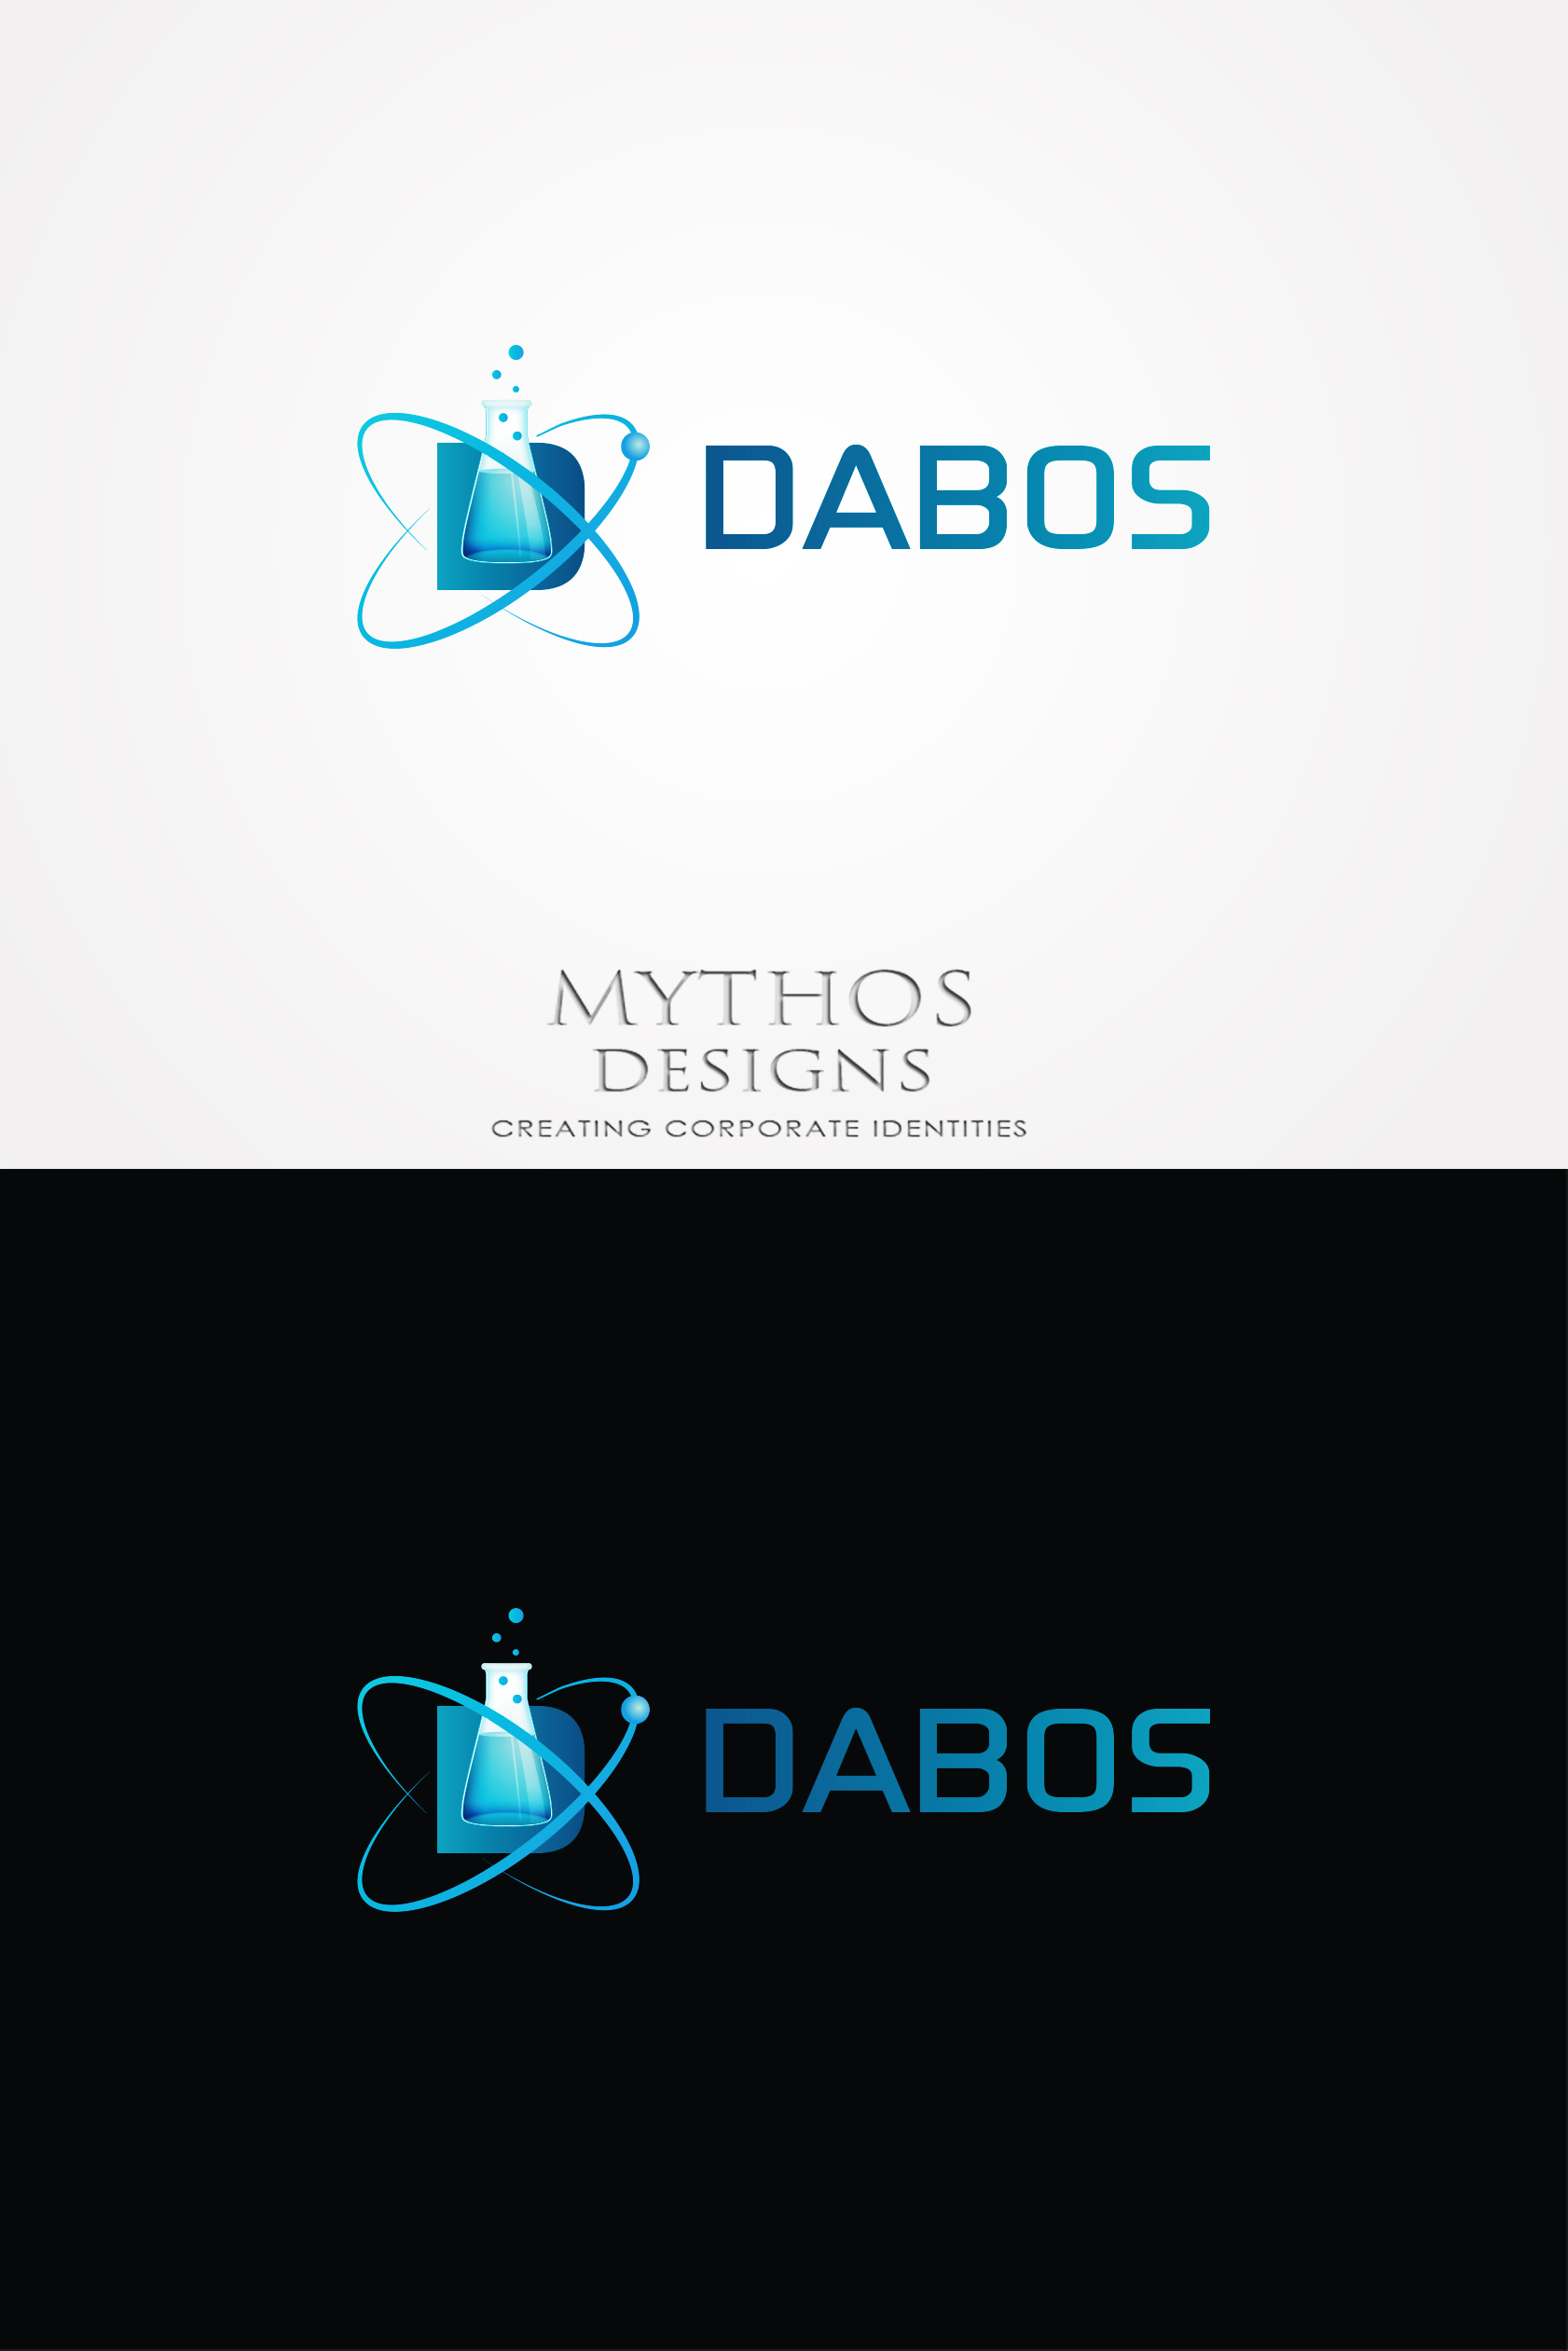 Logo Design by Mythos Designs - Entry No. 69 in the Logo Design Contest Imaginative Logo Design for DABOS, Limited Liability Company.